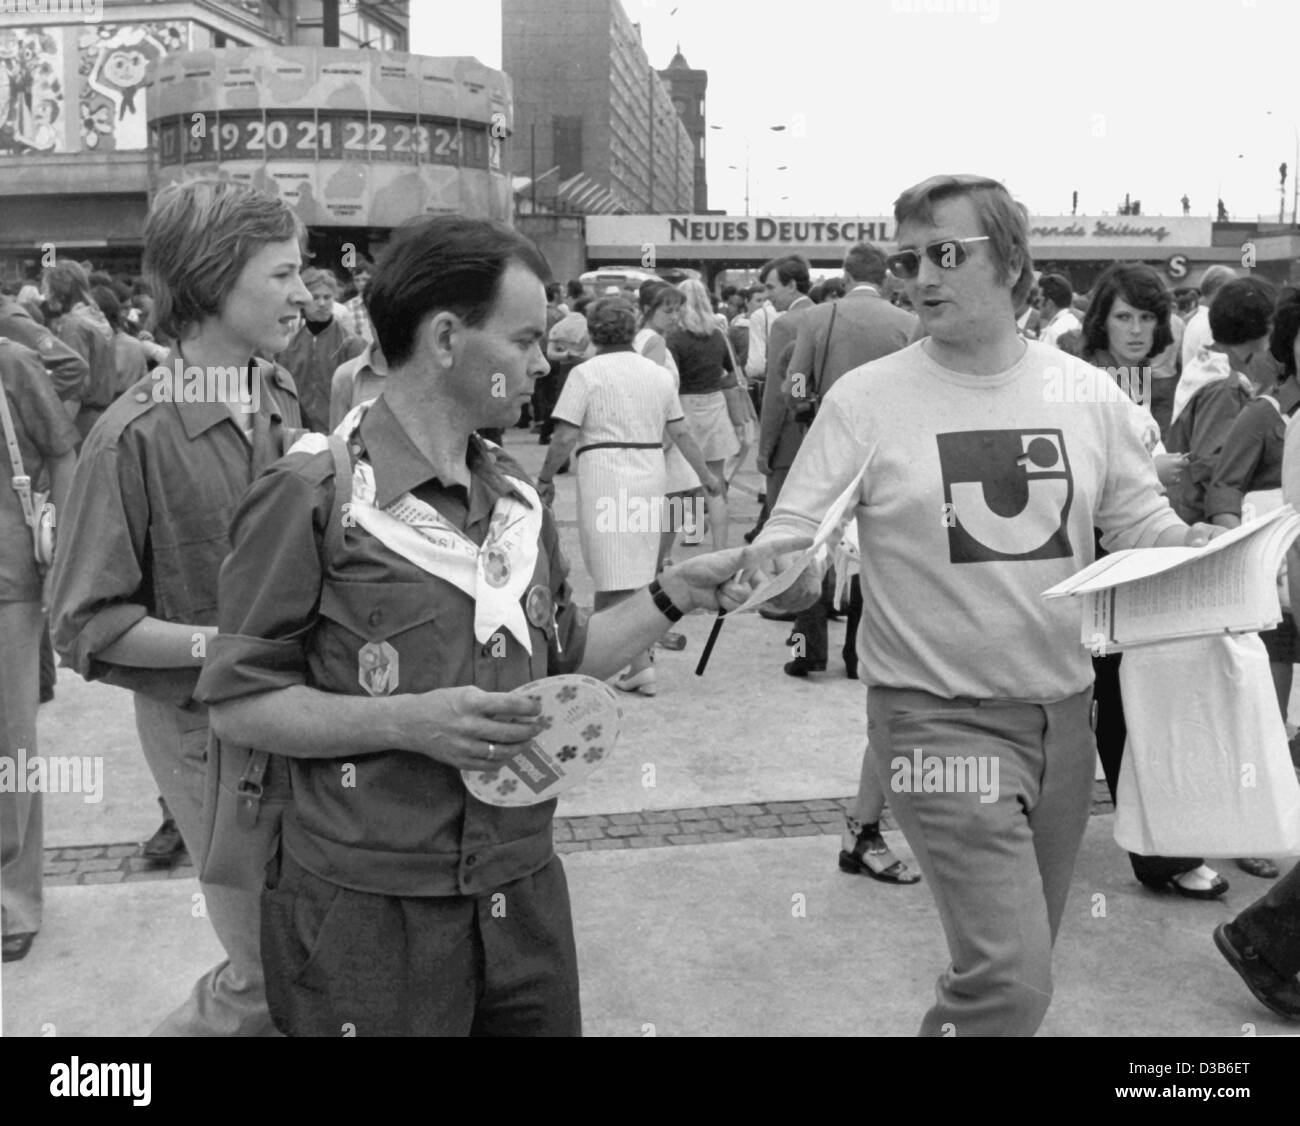 (dpa files) - A member of the West German Junge Union (young union), which was part of the West German festival - Stock Image